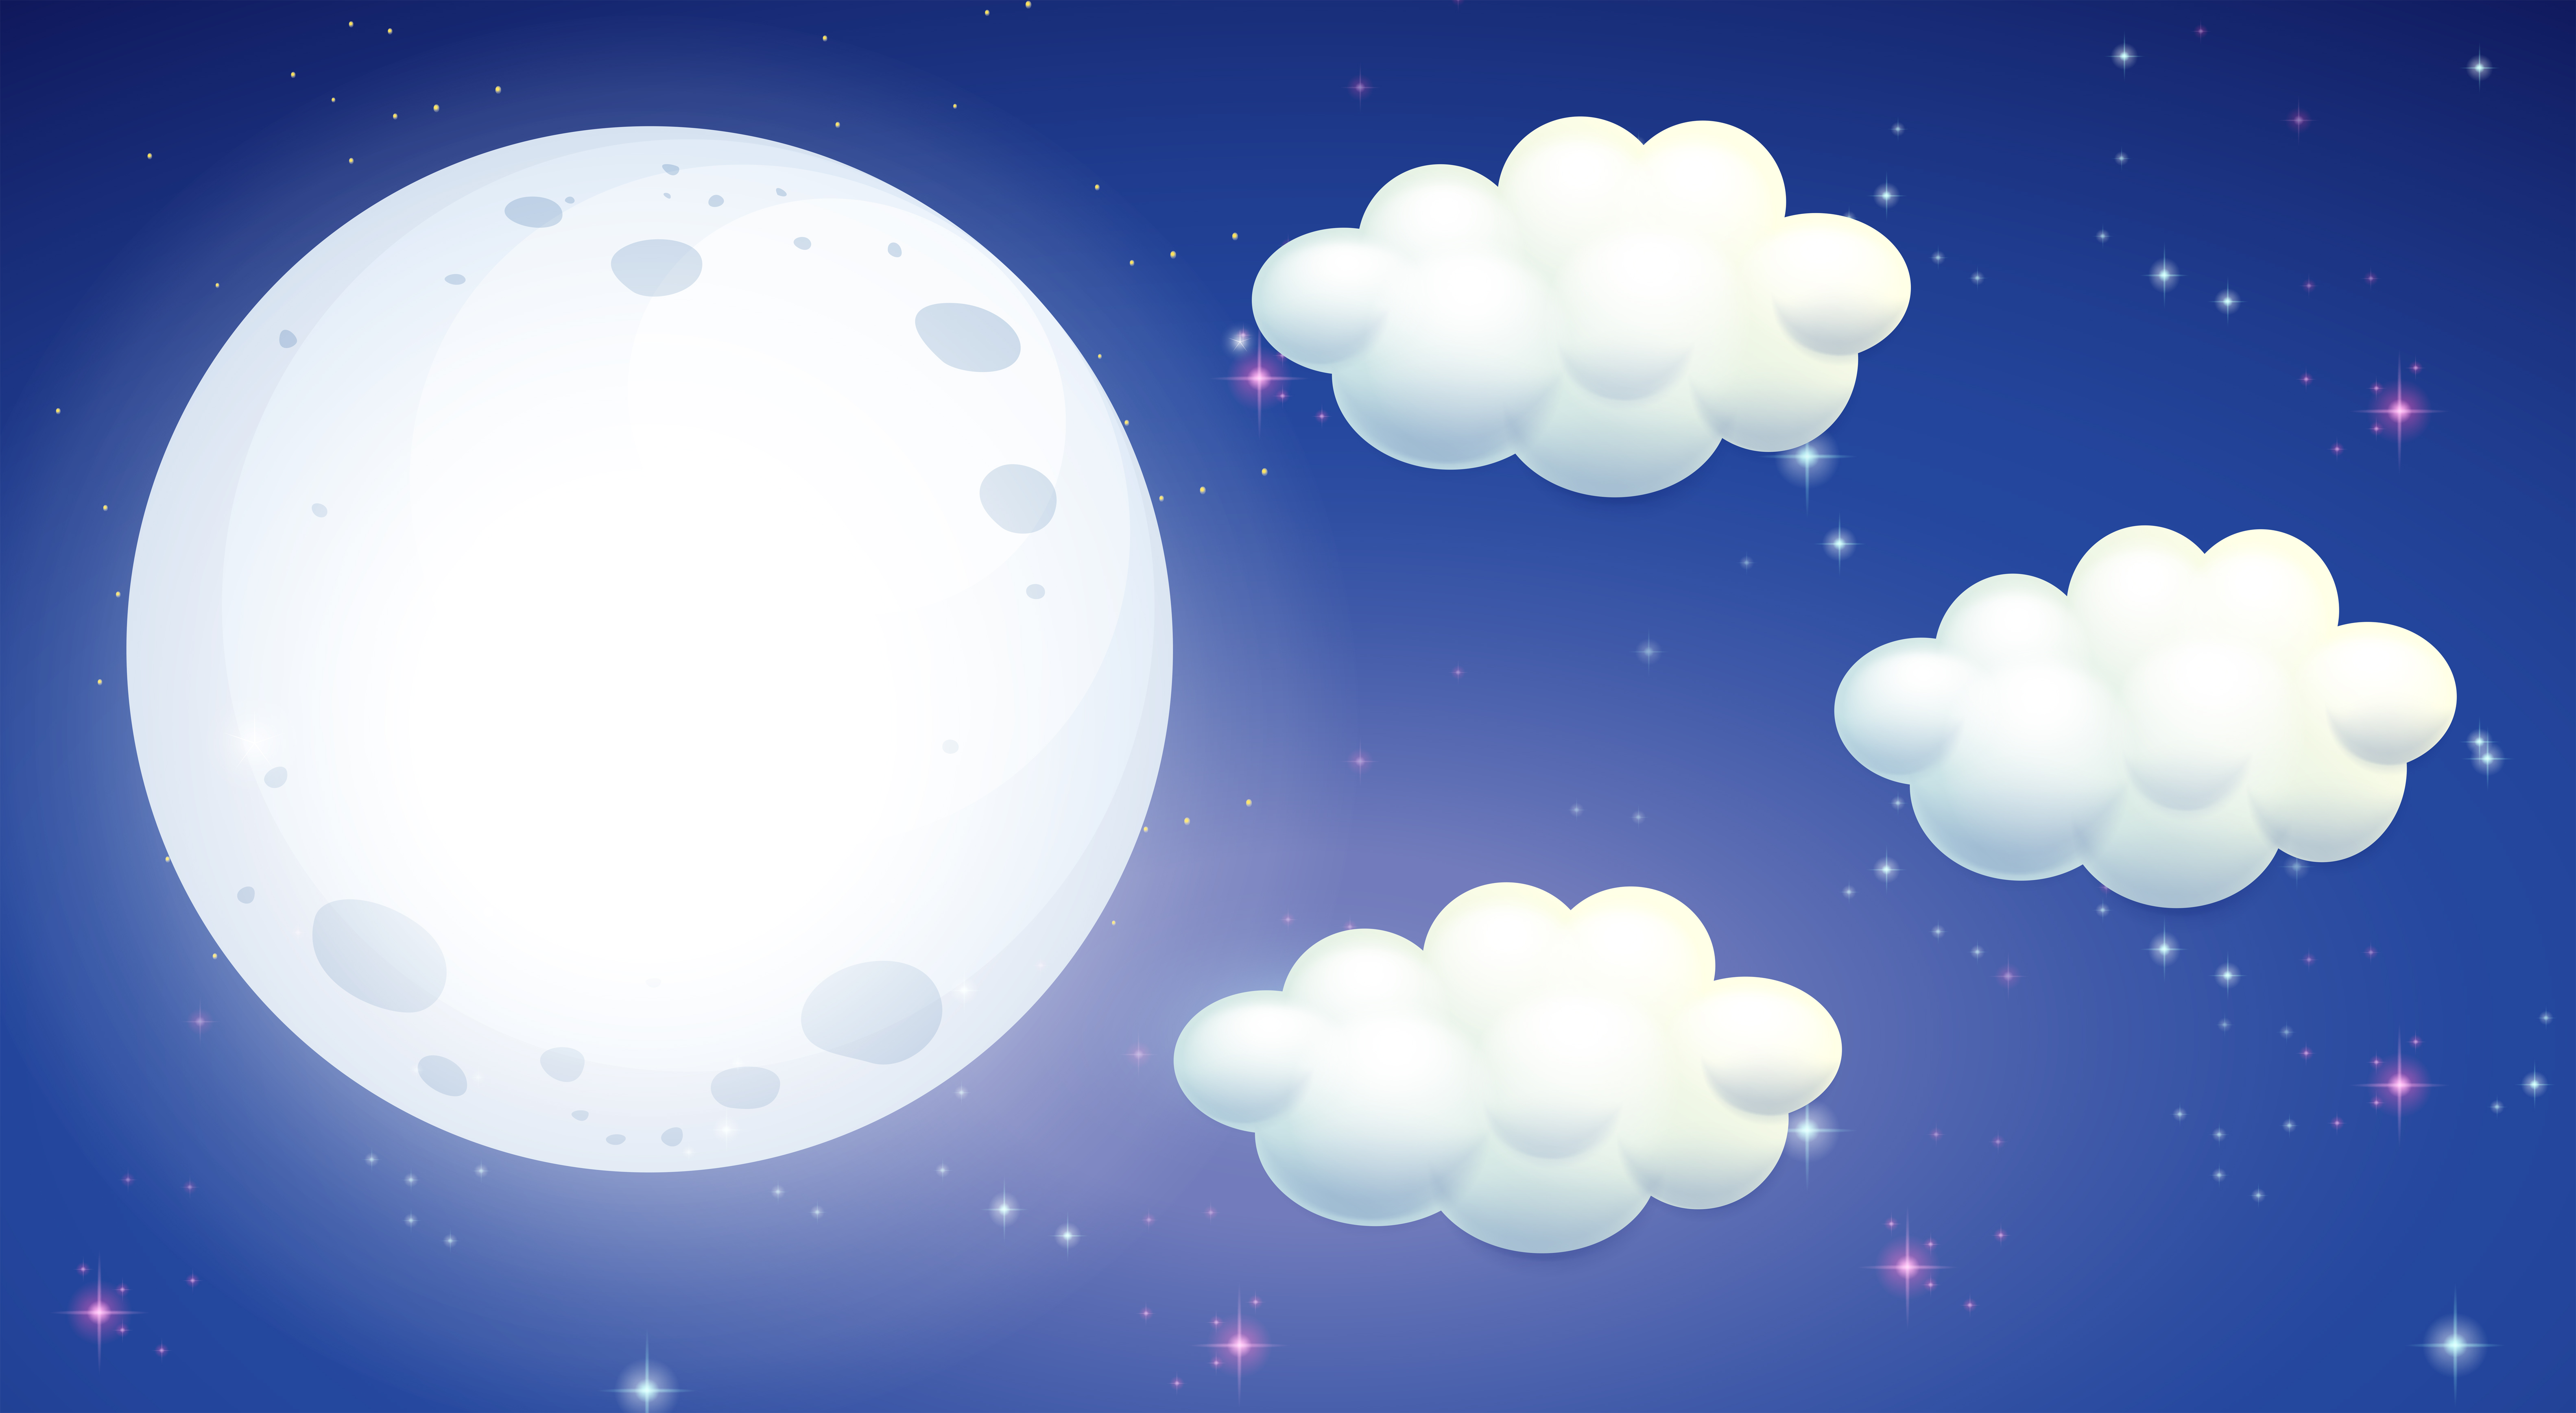 Scene With Full Moon And Clouds Download Free Vectors